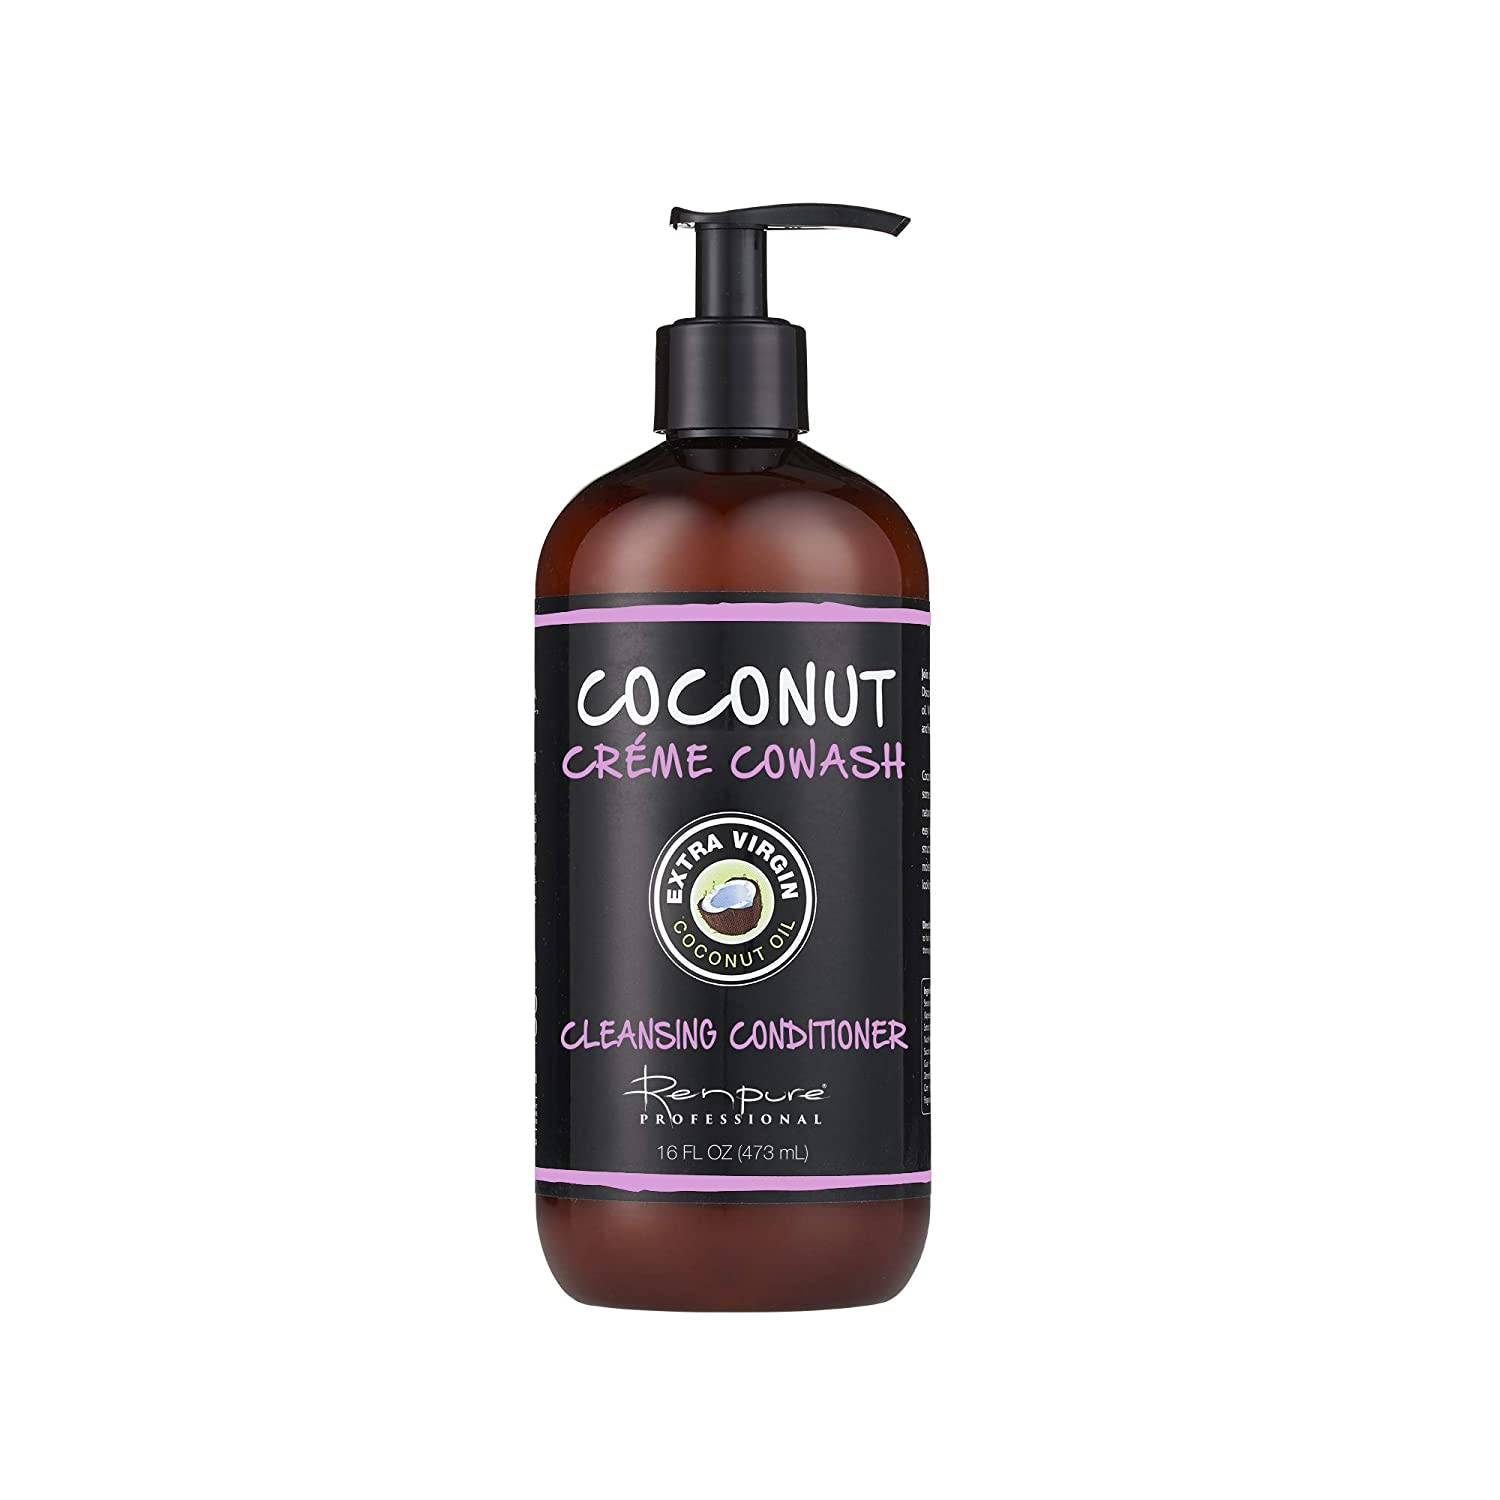 Renpure Coconut Creme Cowash Cleansing Conditioner, 16 Ounces